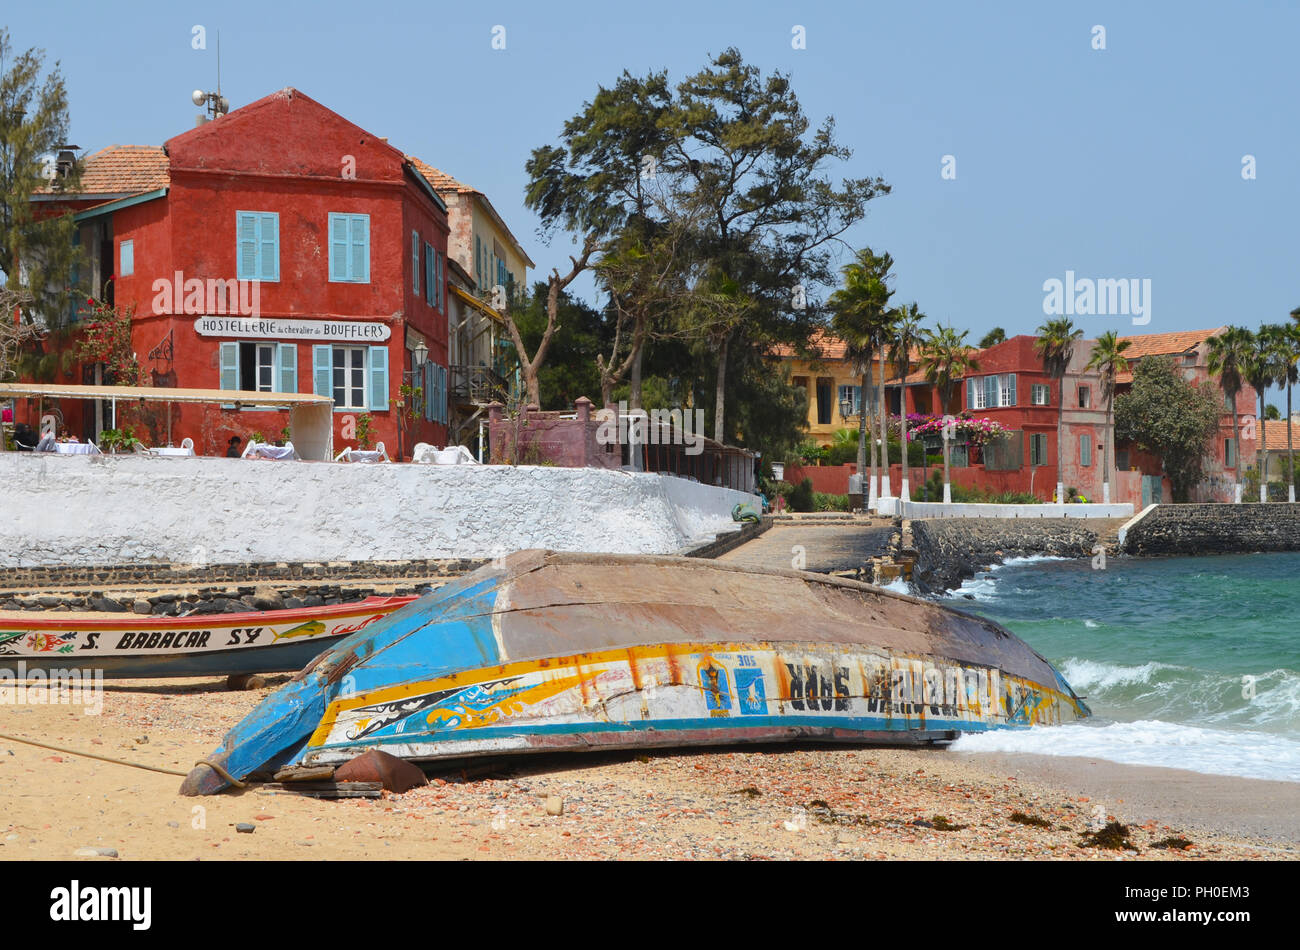 Gorée island, an old slave trading centre, near Dakar, Senegal - Stock Image